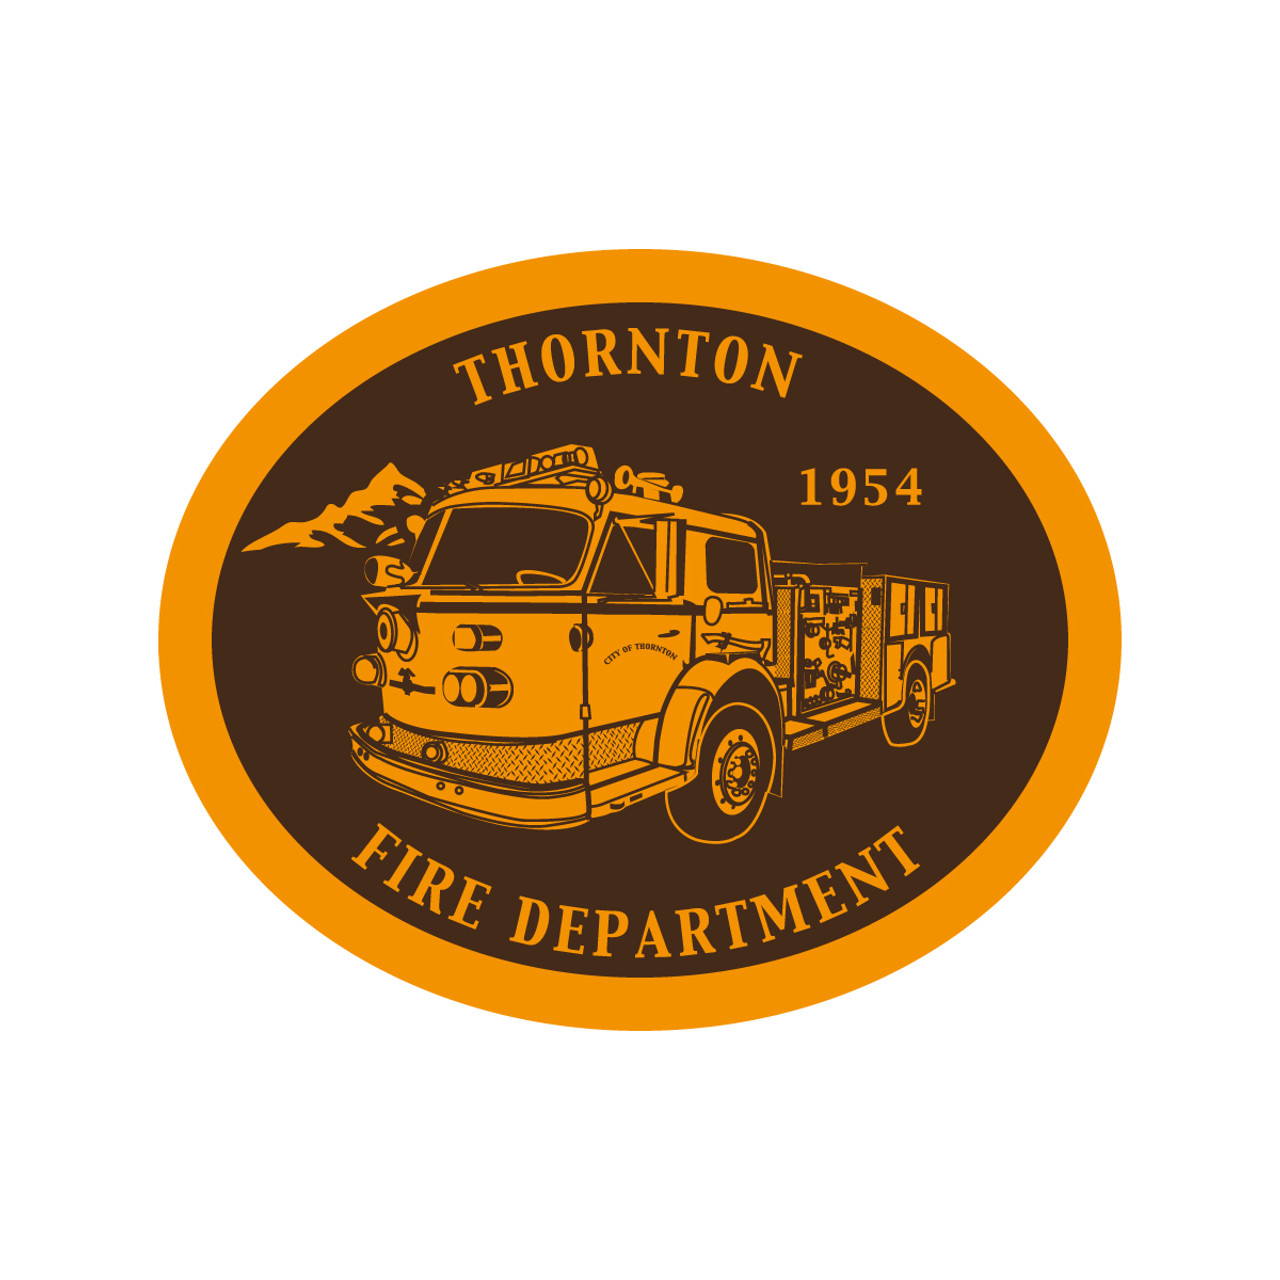 Thornton Fire Department Buckle (RESTRICTED) NEEDS LARGE BAIL